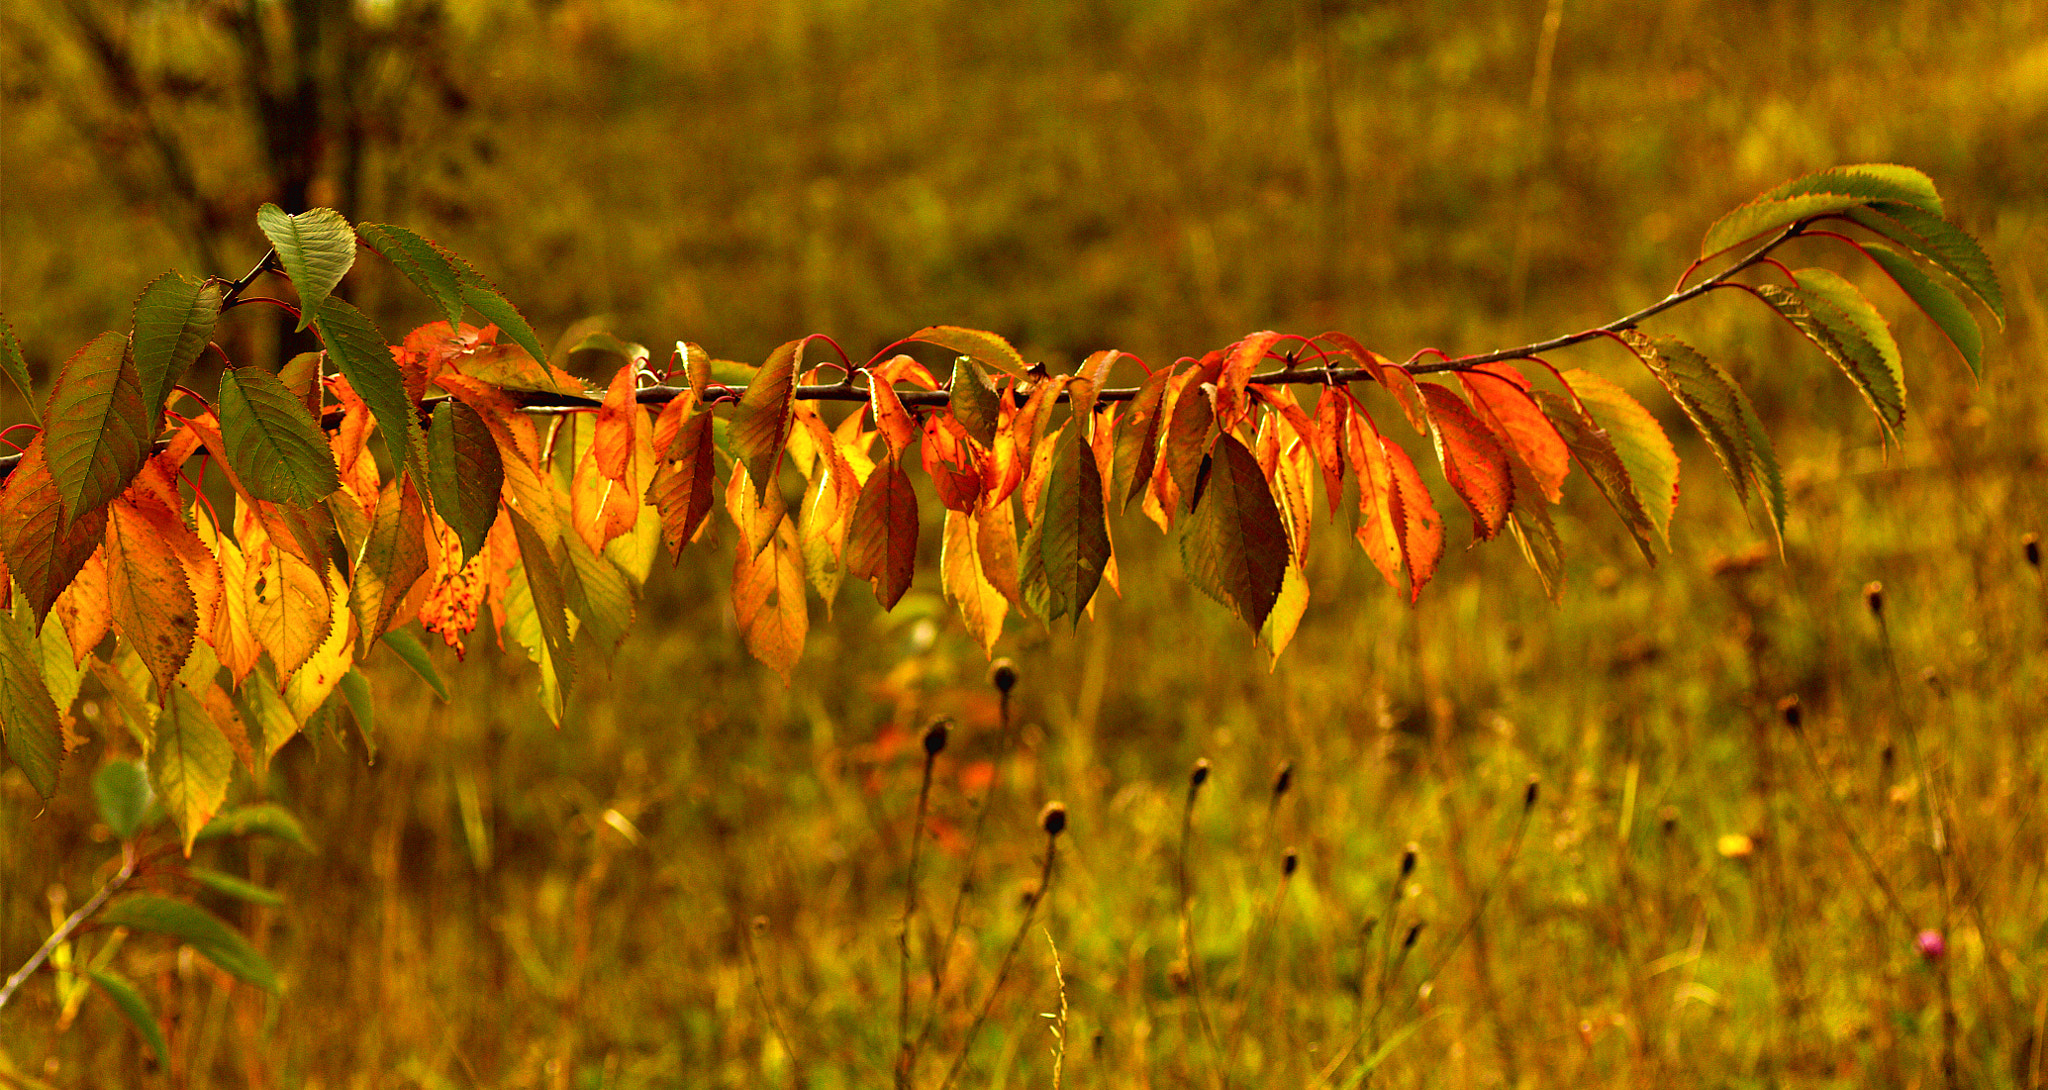 Photograph Hanging Out to Dry! by Chrissie Barrow on 500px